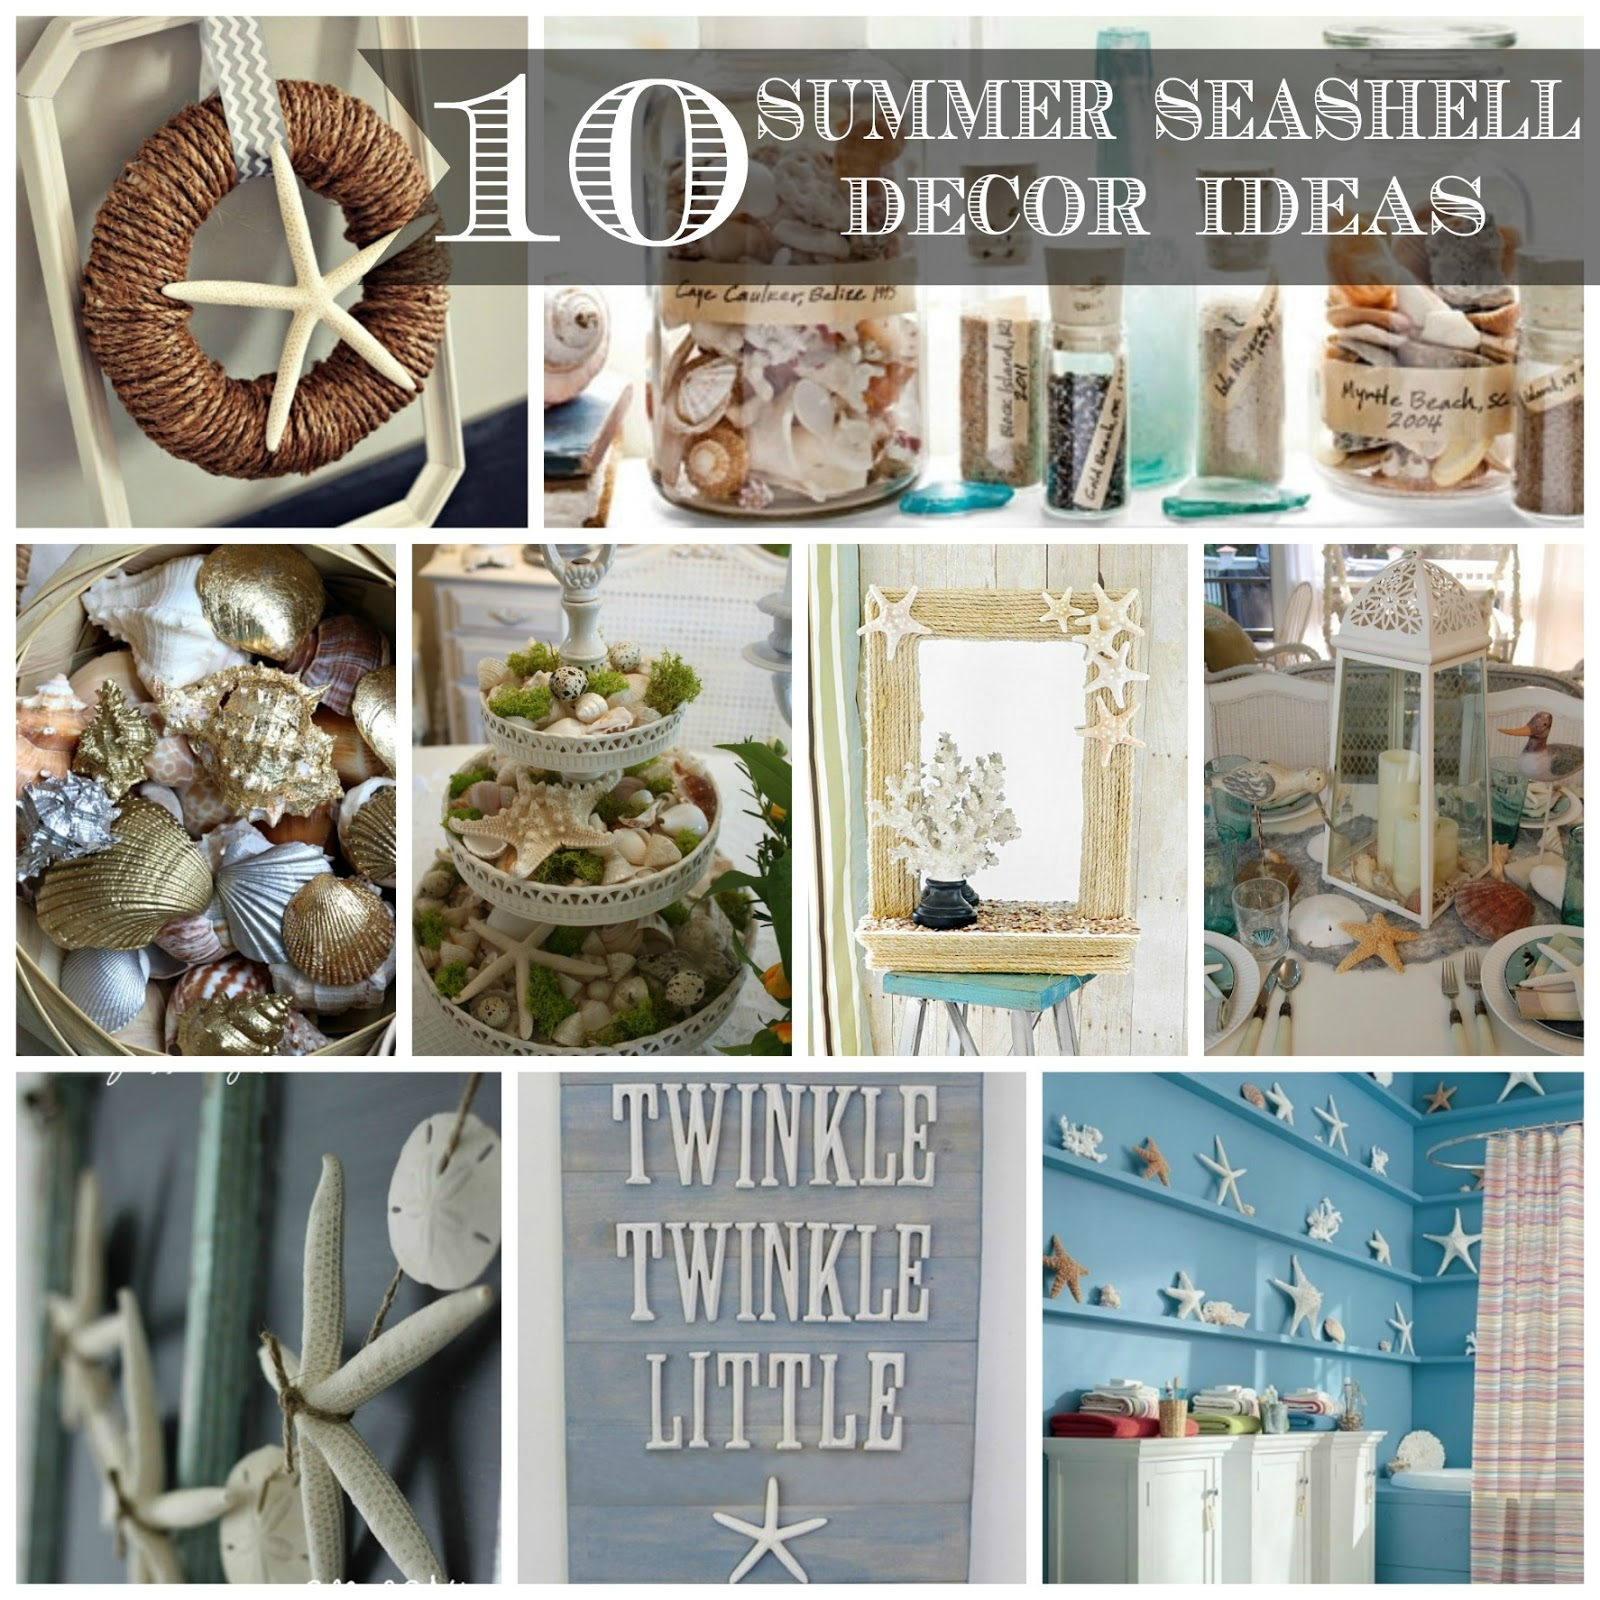 Diy seashell bathroom decor - Diy Seashell Bathroom Decor 0